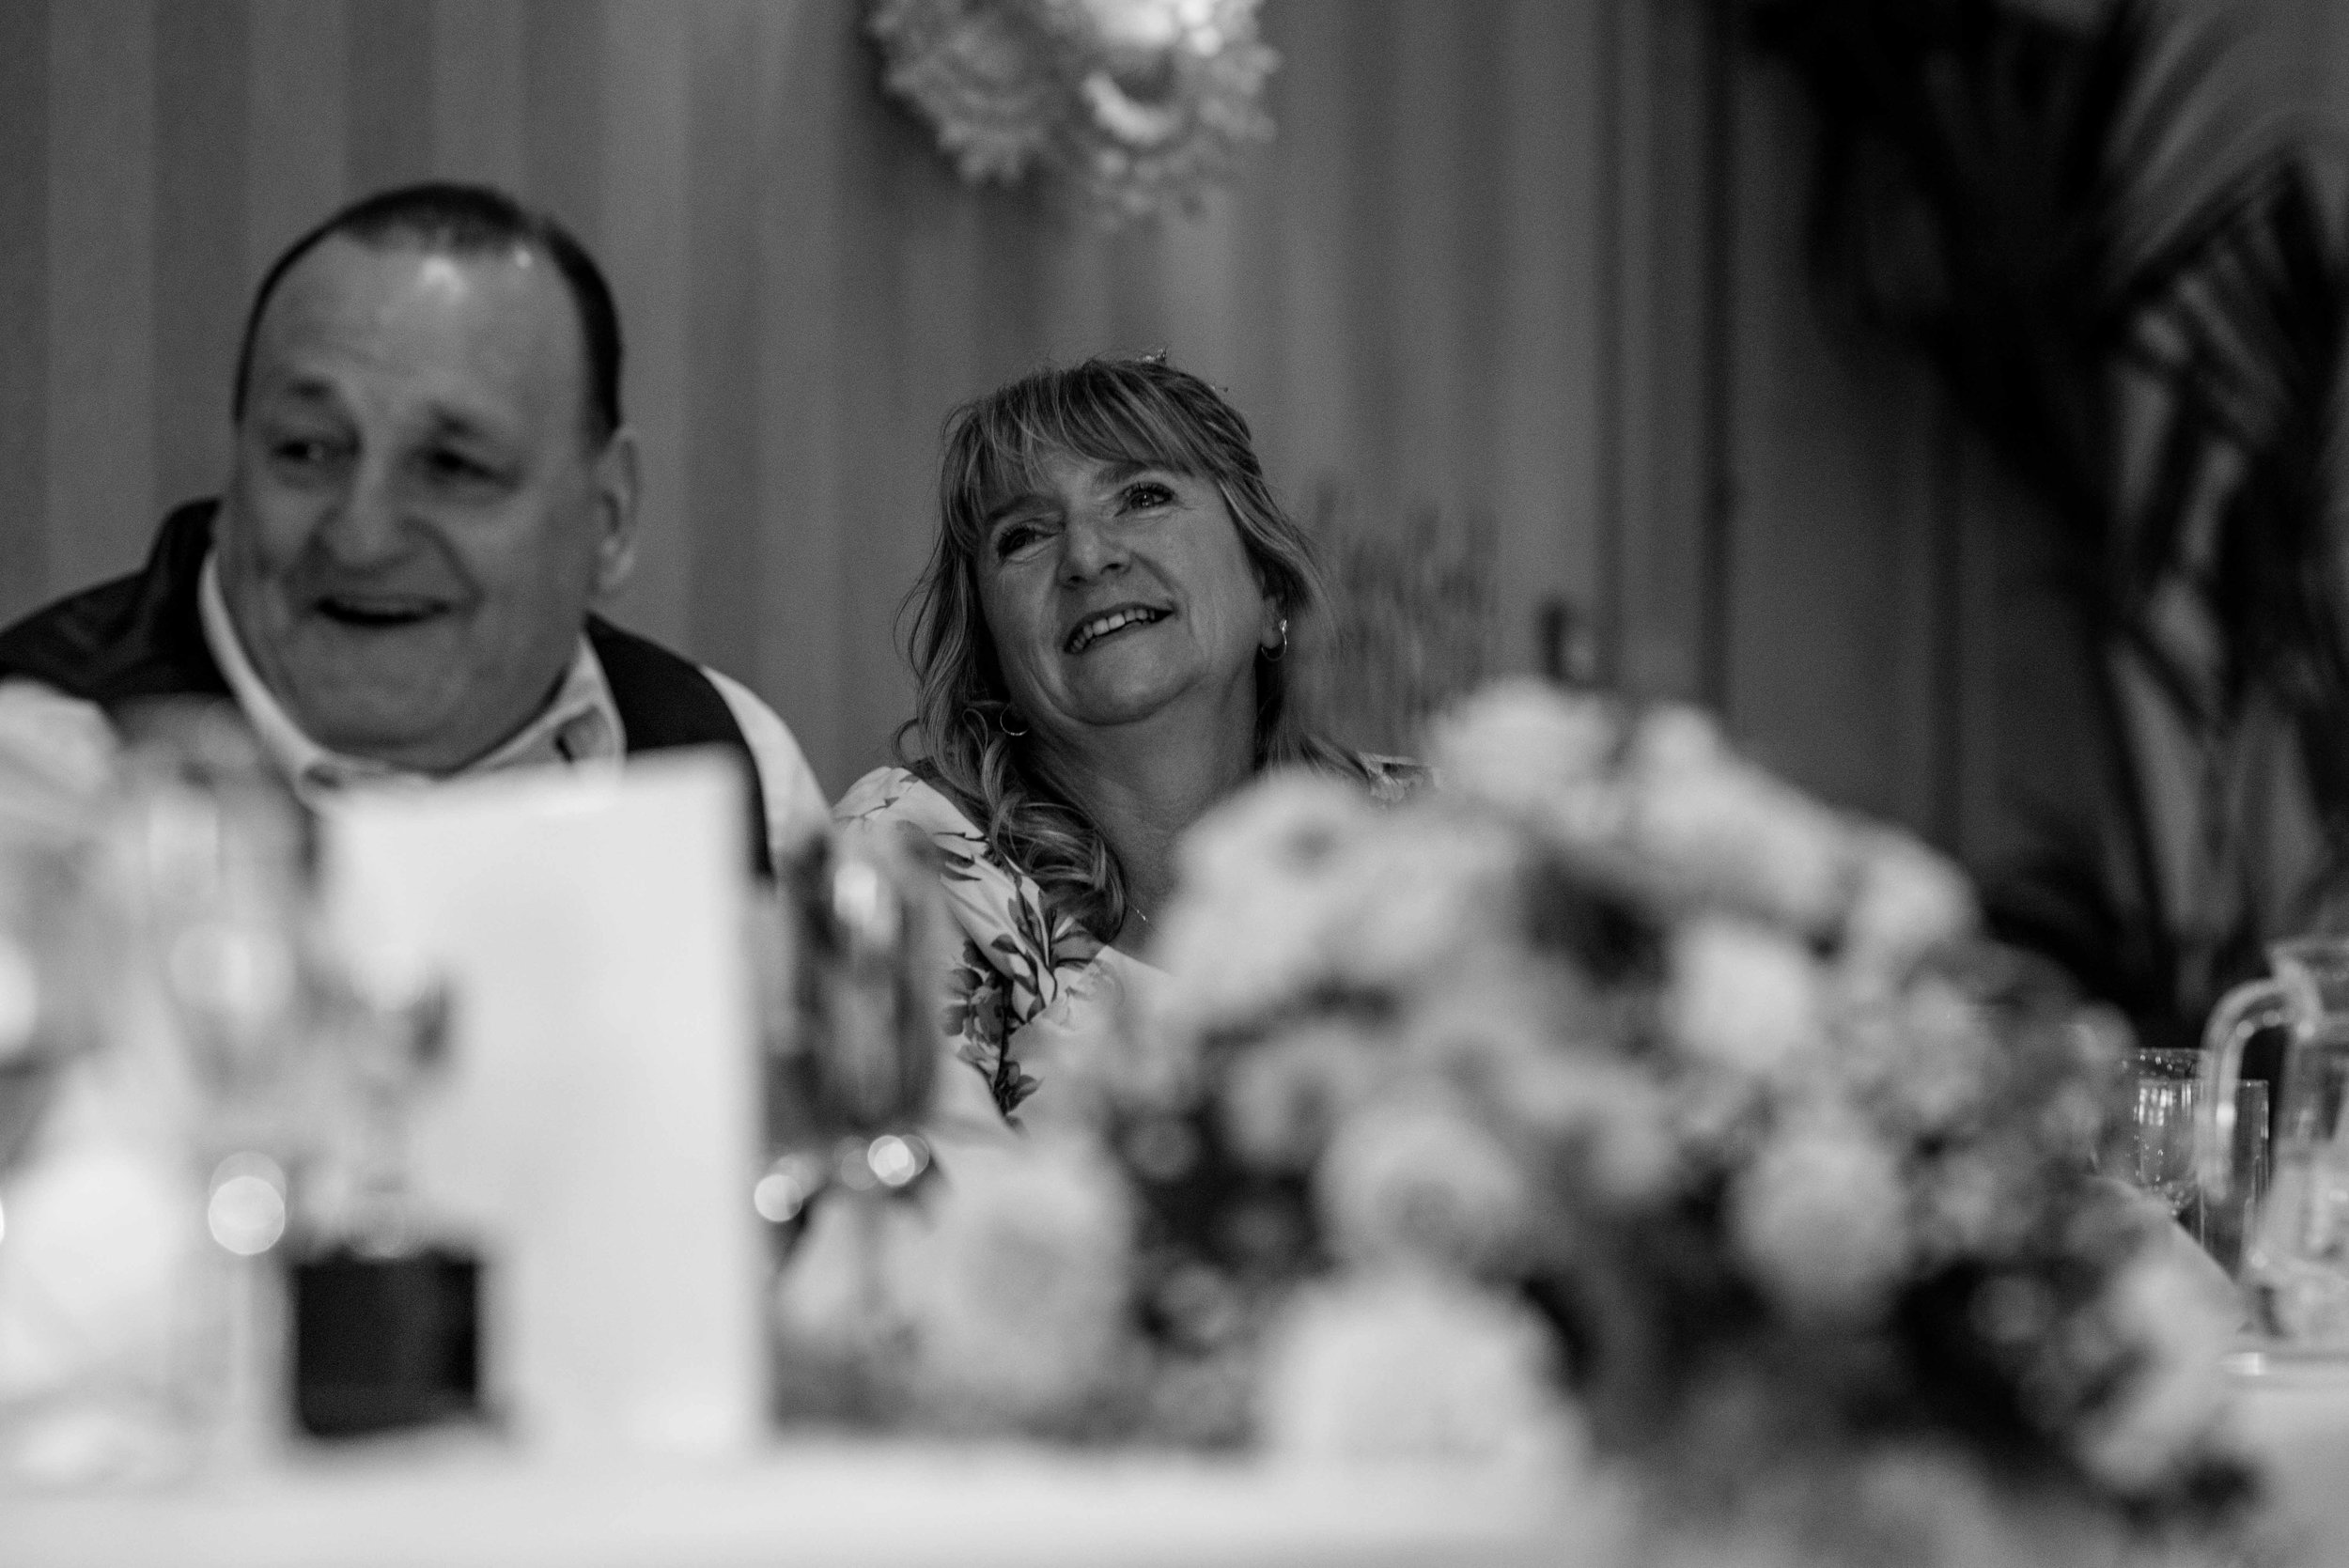 The brides mother looks up at her new son in law during the speeches